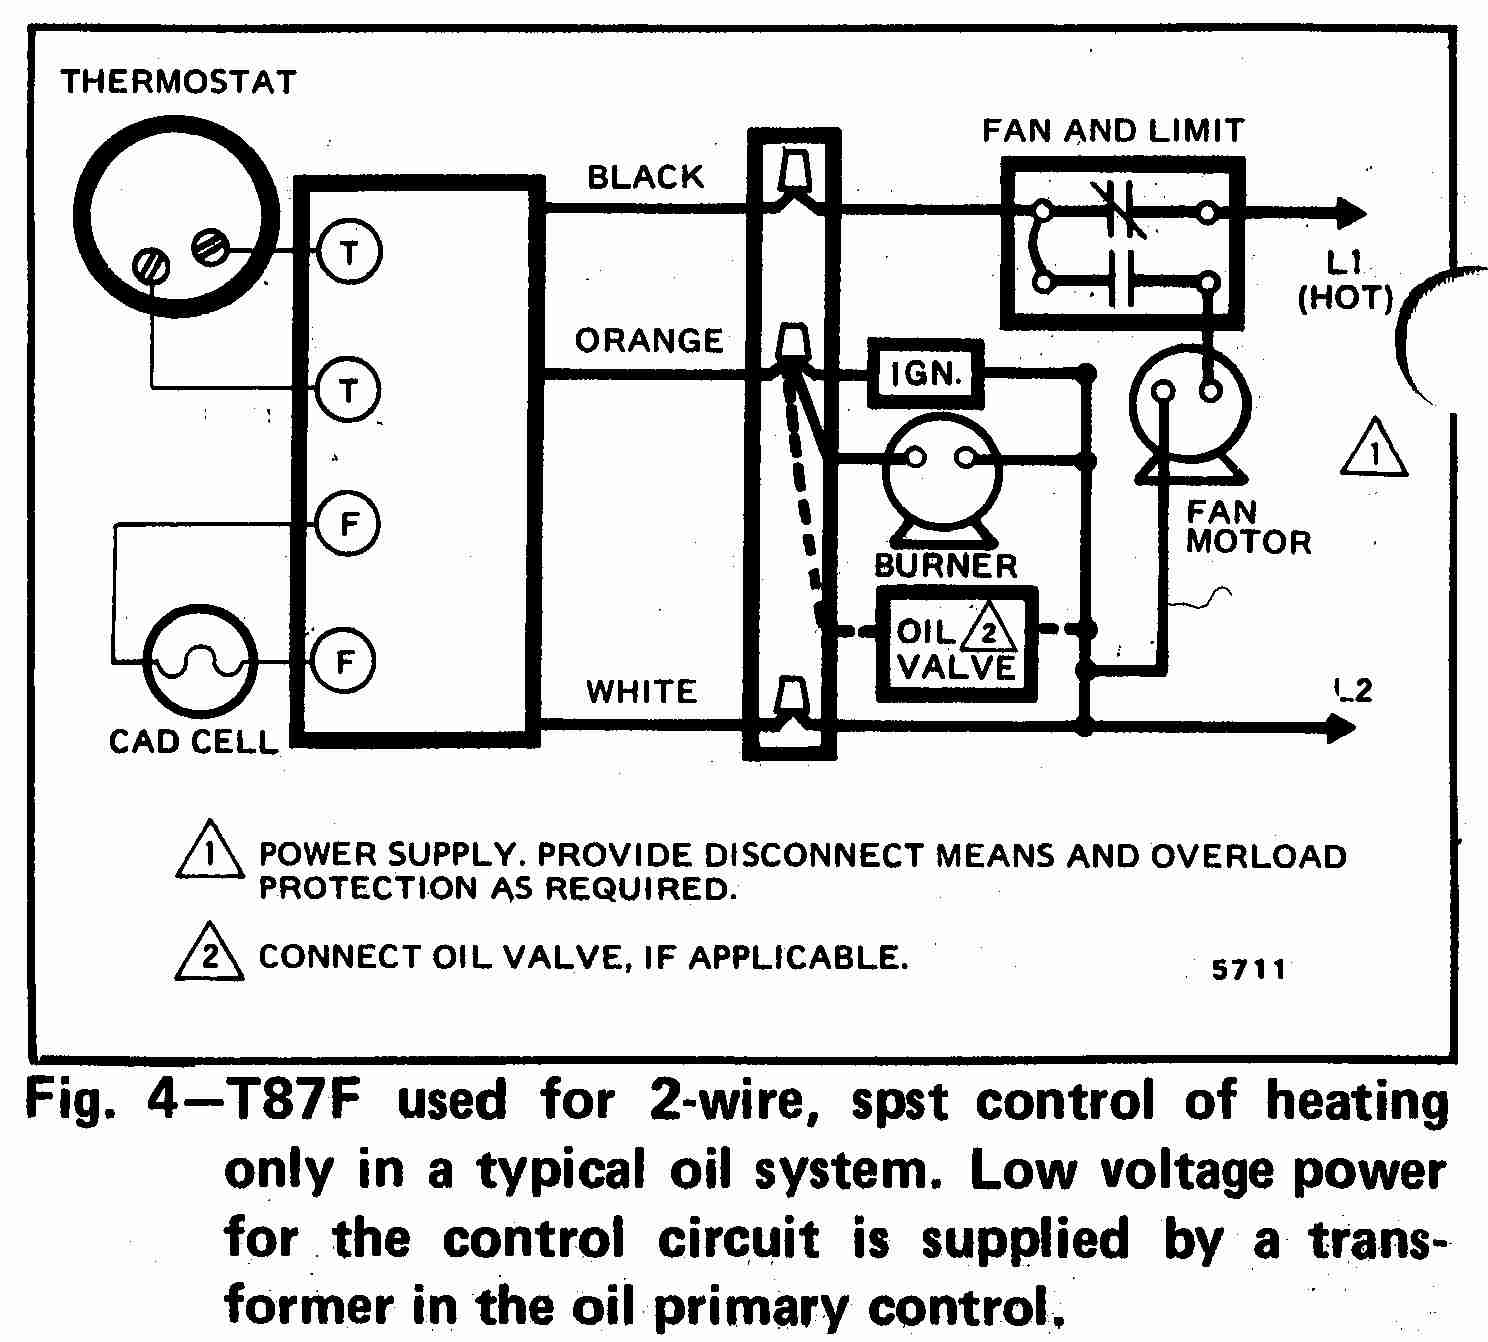 TT_T87F_0002_2W_DJF room thermostat wiring diagrams for hvac systems honeywell aquastat wiring diagram at bayanpartner.co